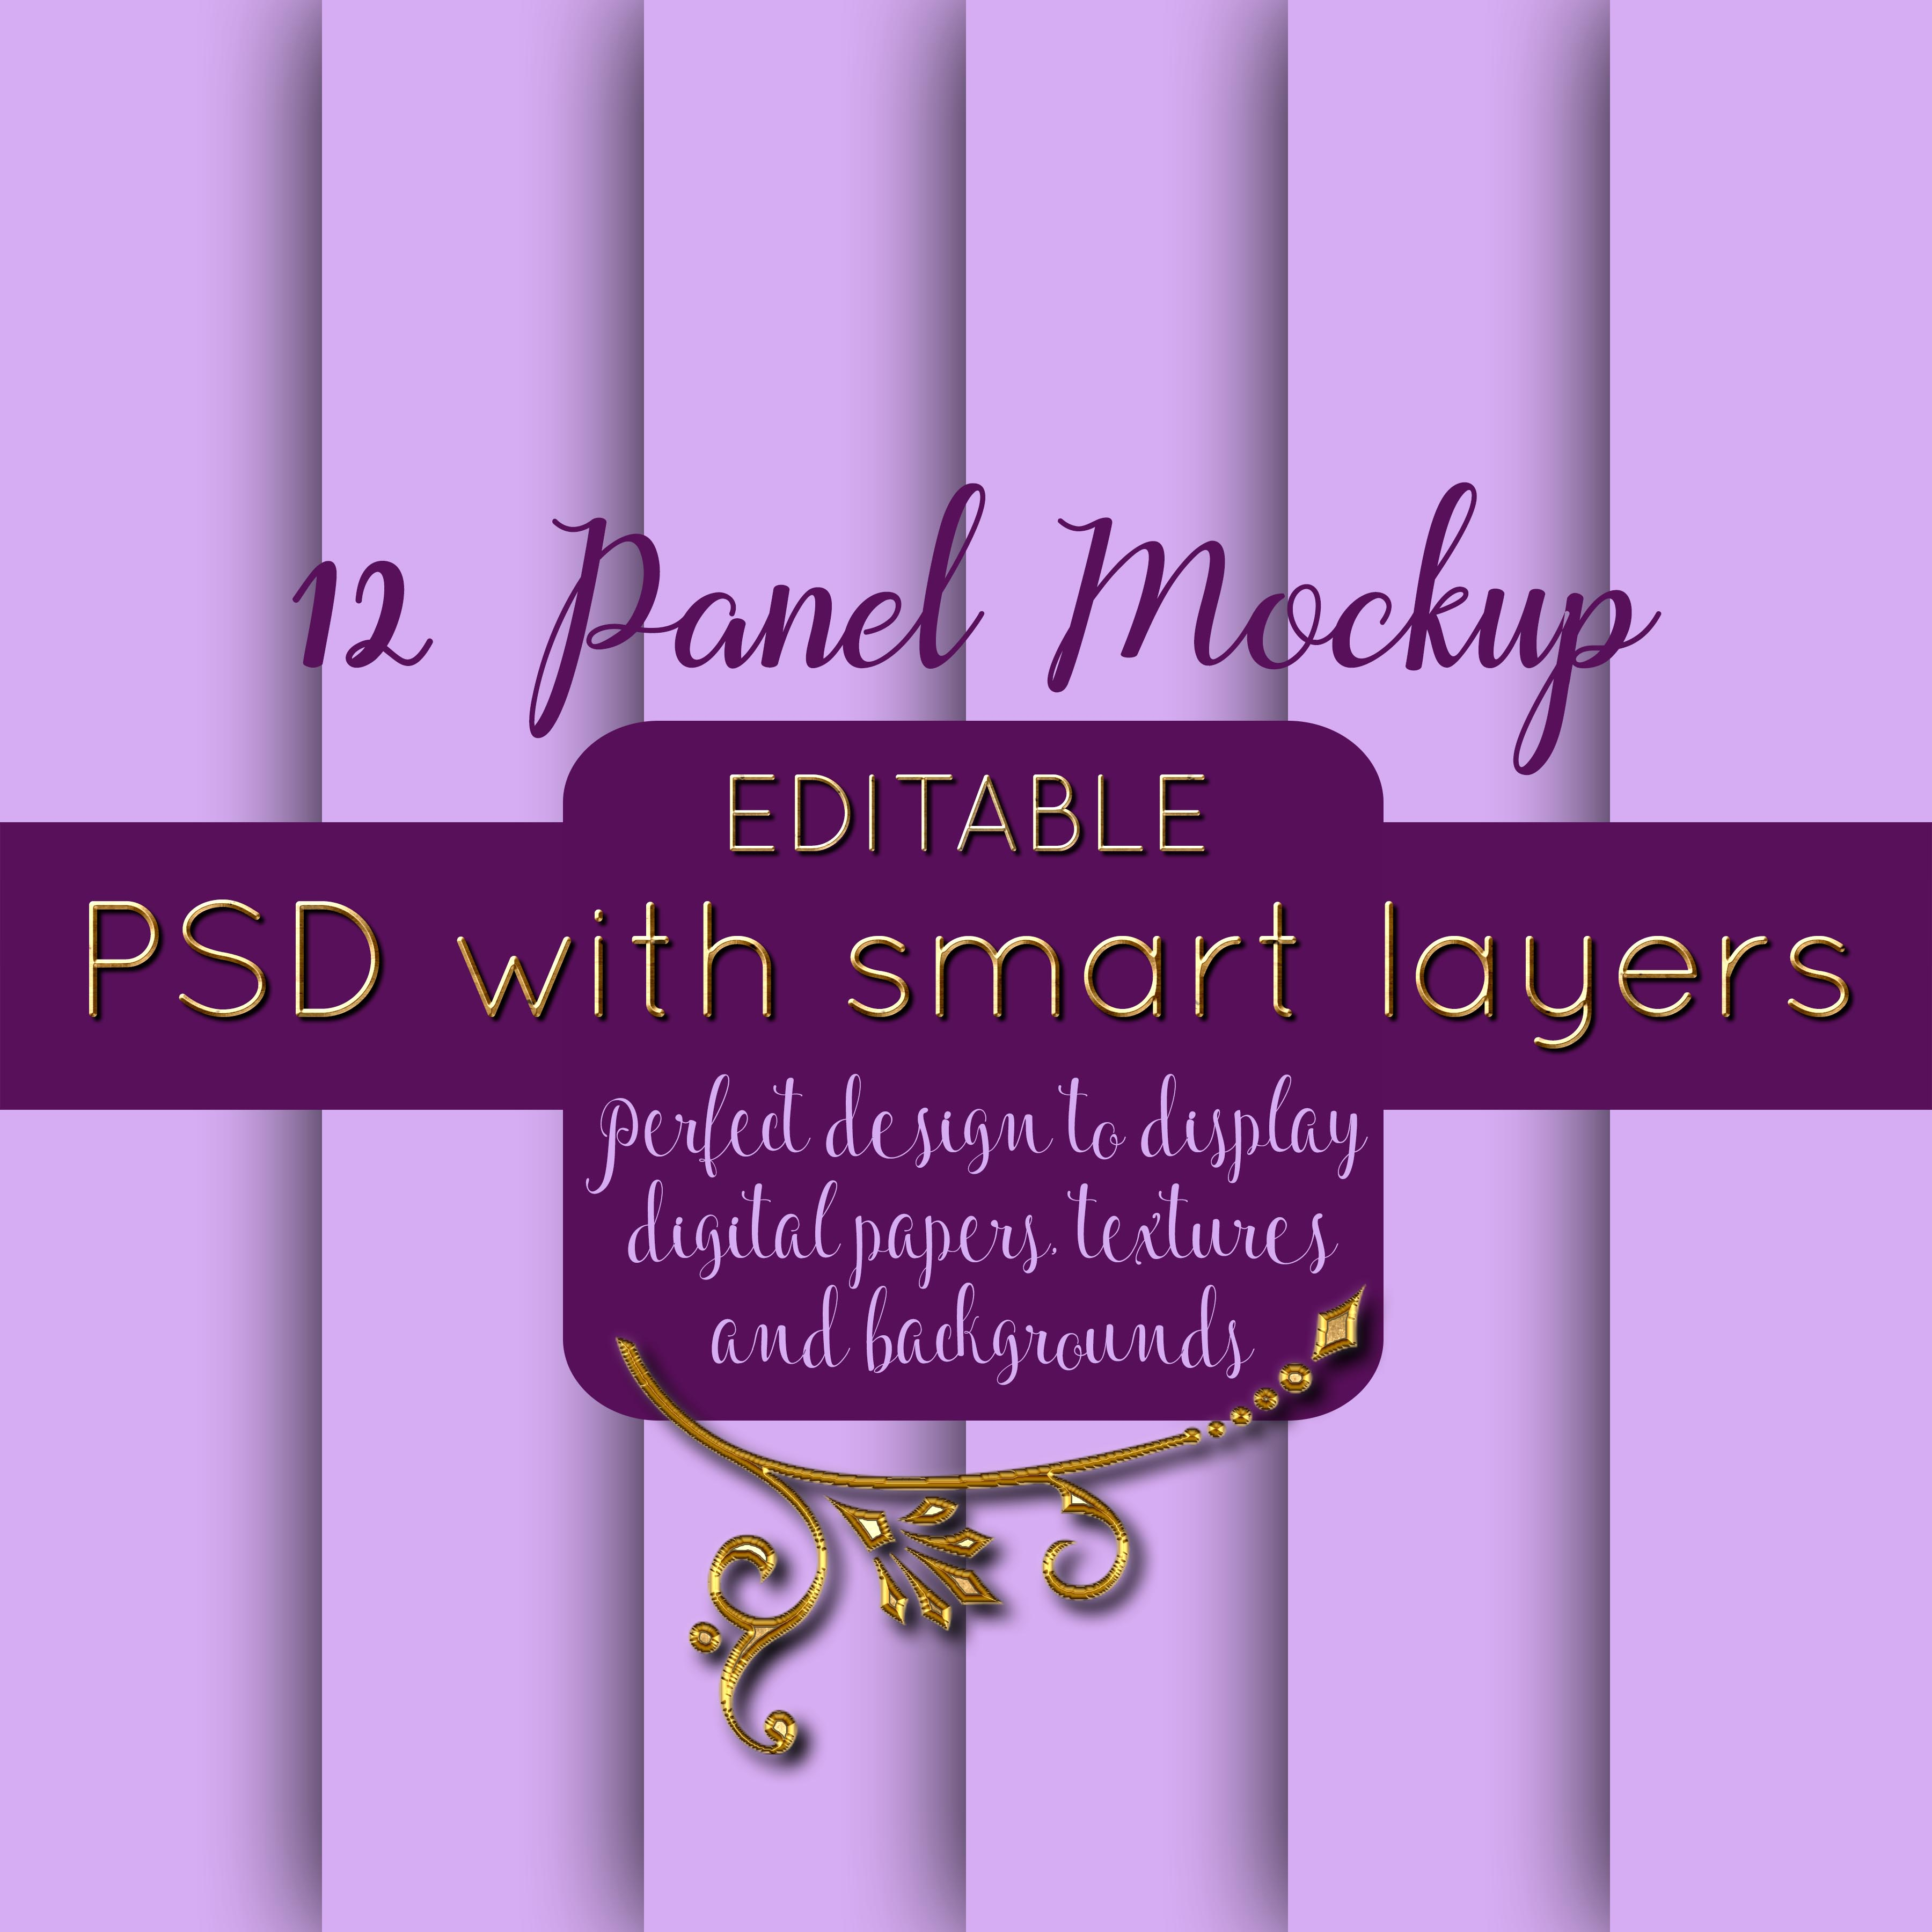 12 Panel Mockup for Digital Papers, Textures & Backgrounds example image 1